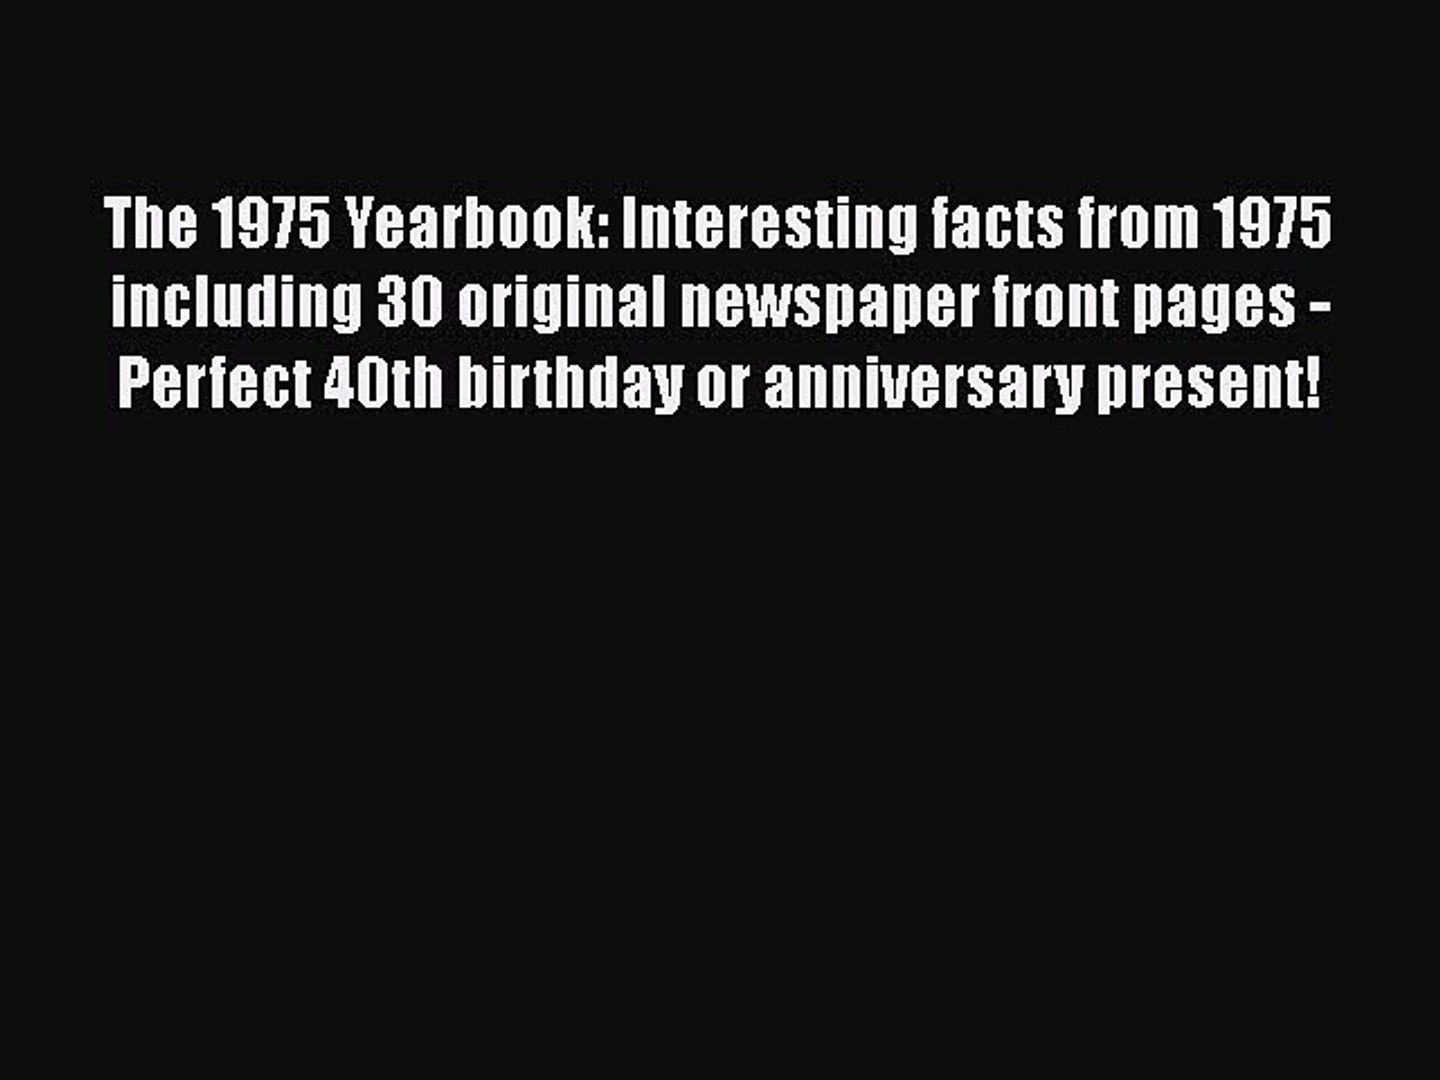 Download The 1975 Yearbook: Interesting facts from 1975 including 30 original newspaper front